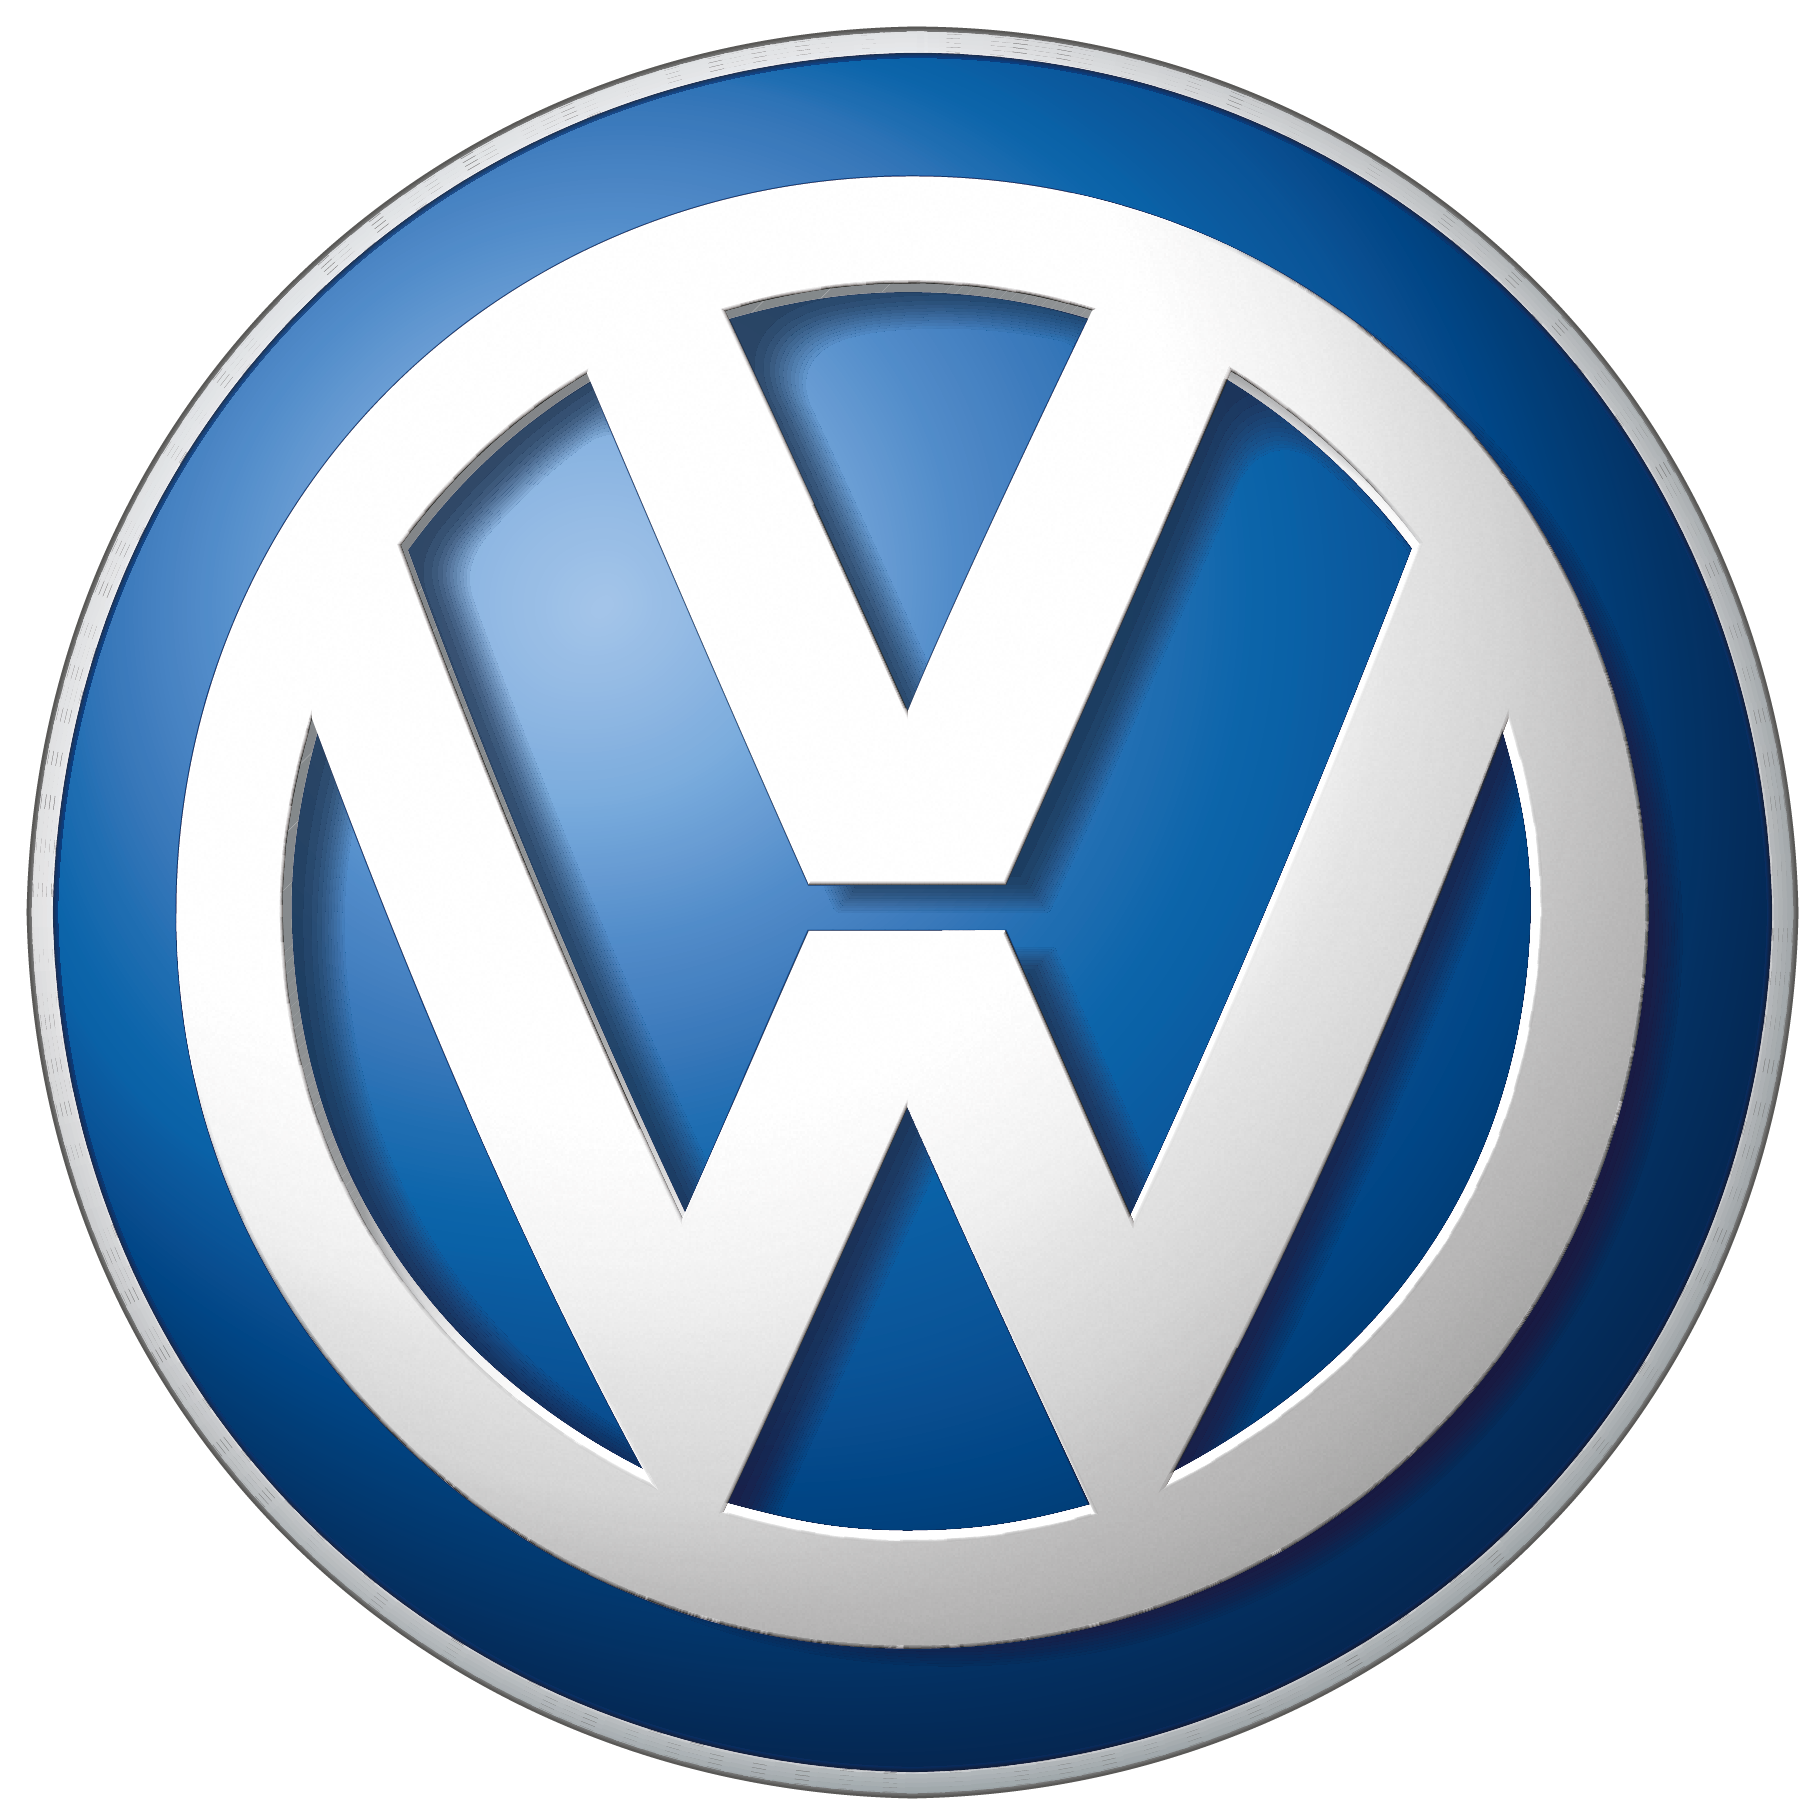 VW is one of the most luxurious brands but sadly, not many scanners can support this brand.